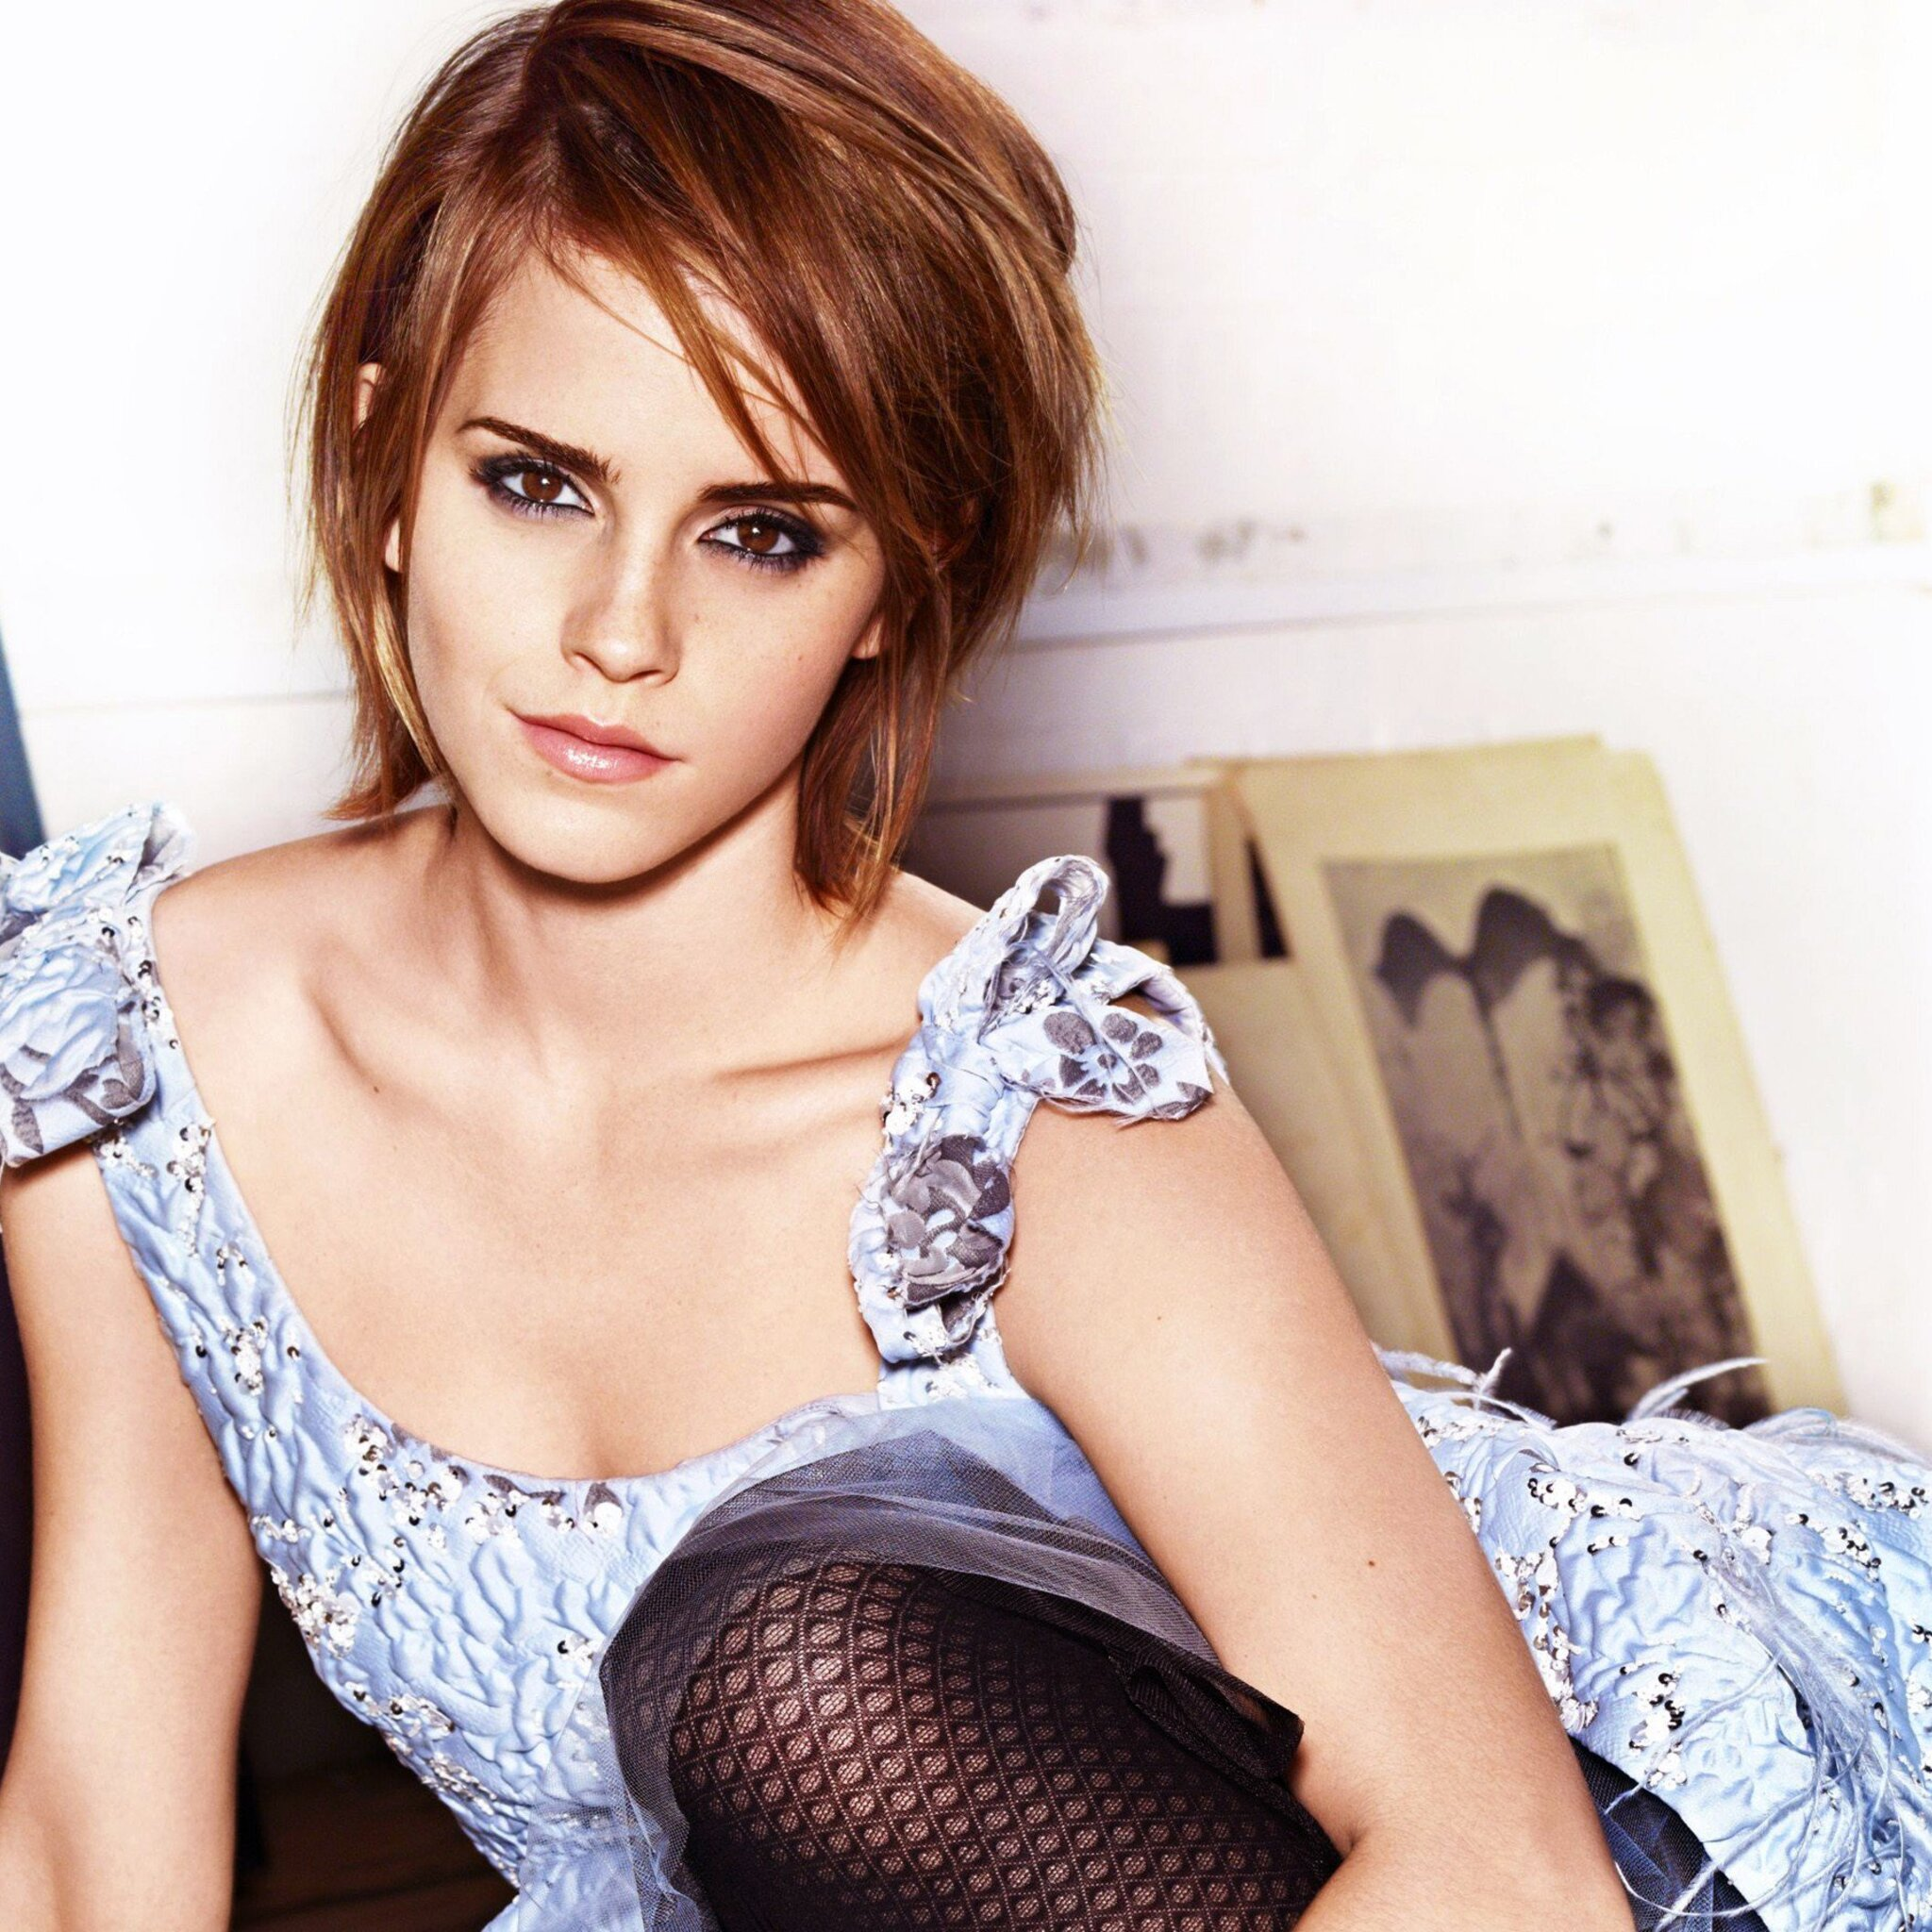 2048x2048 emma watson hot ipad air hd 4k wallpapers - Emma watson wallpaper free download ...